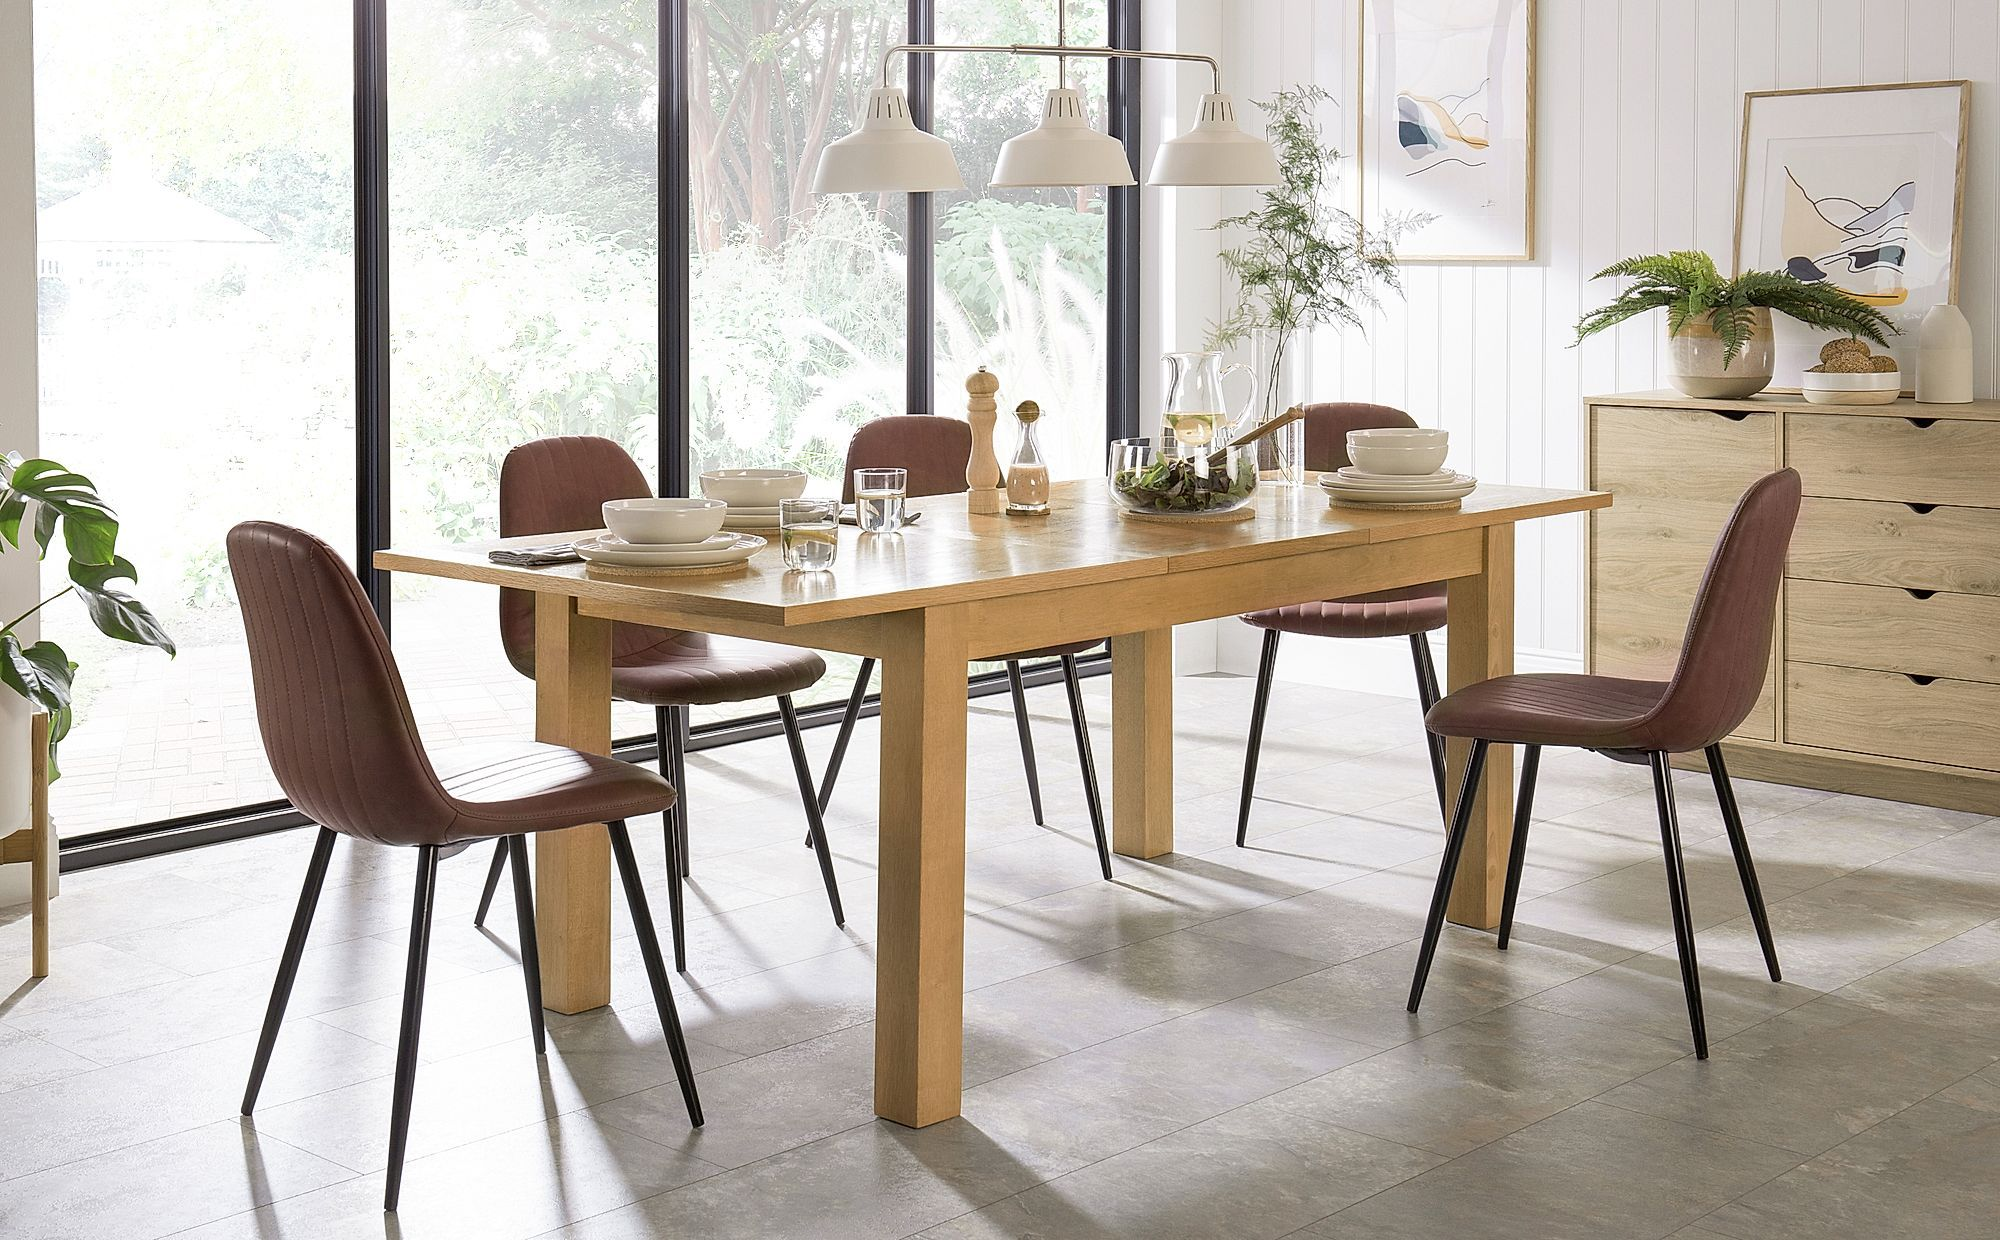 Hamilton 150 200cm Oak Extending Dining Table With 4 Brooklyn Tan